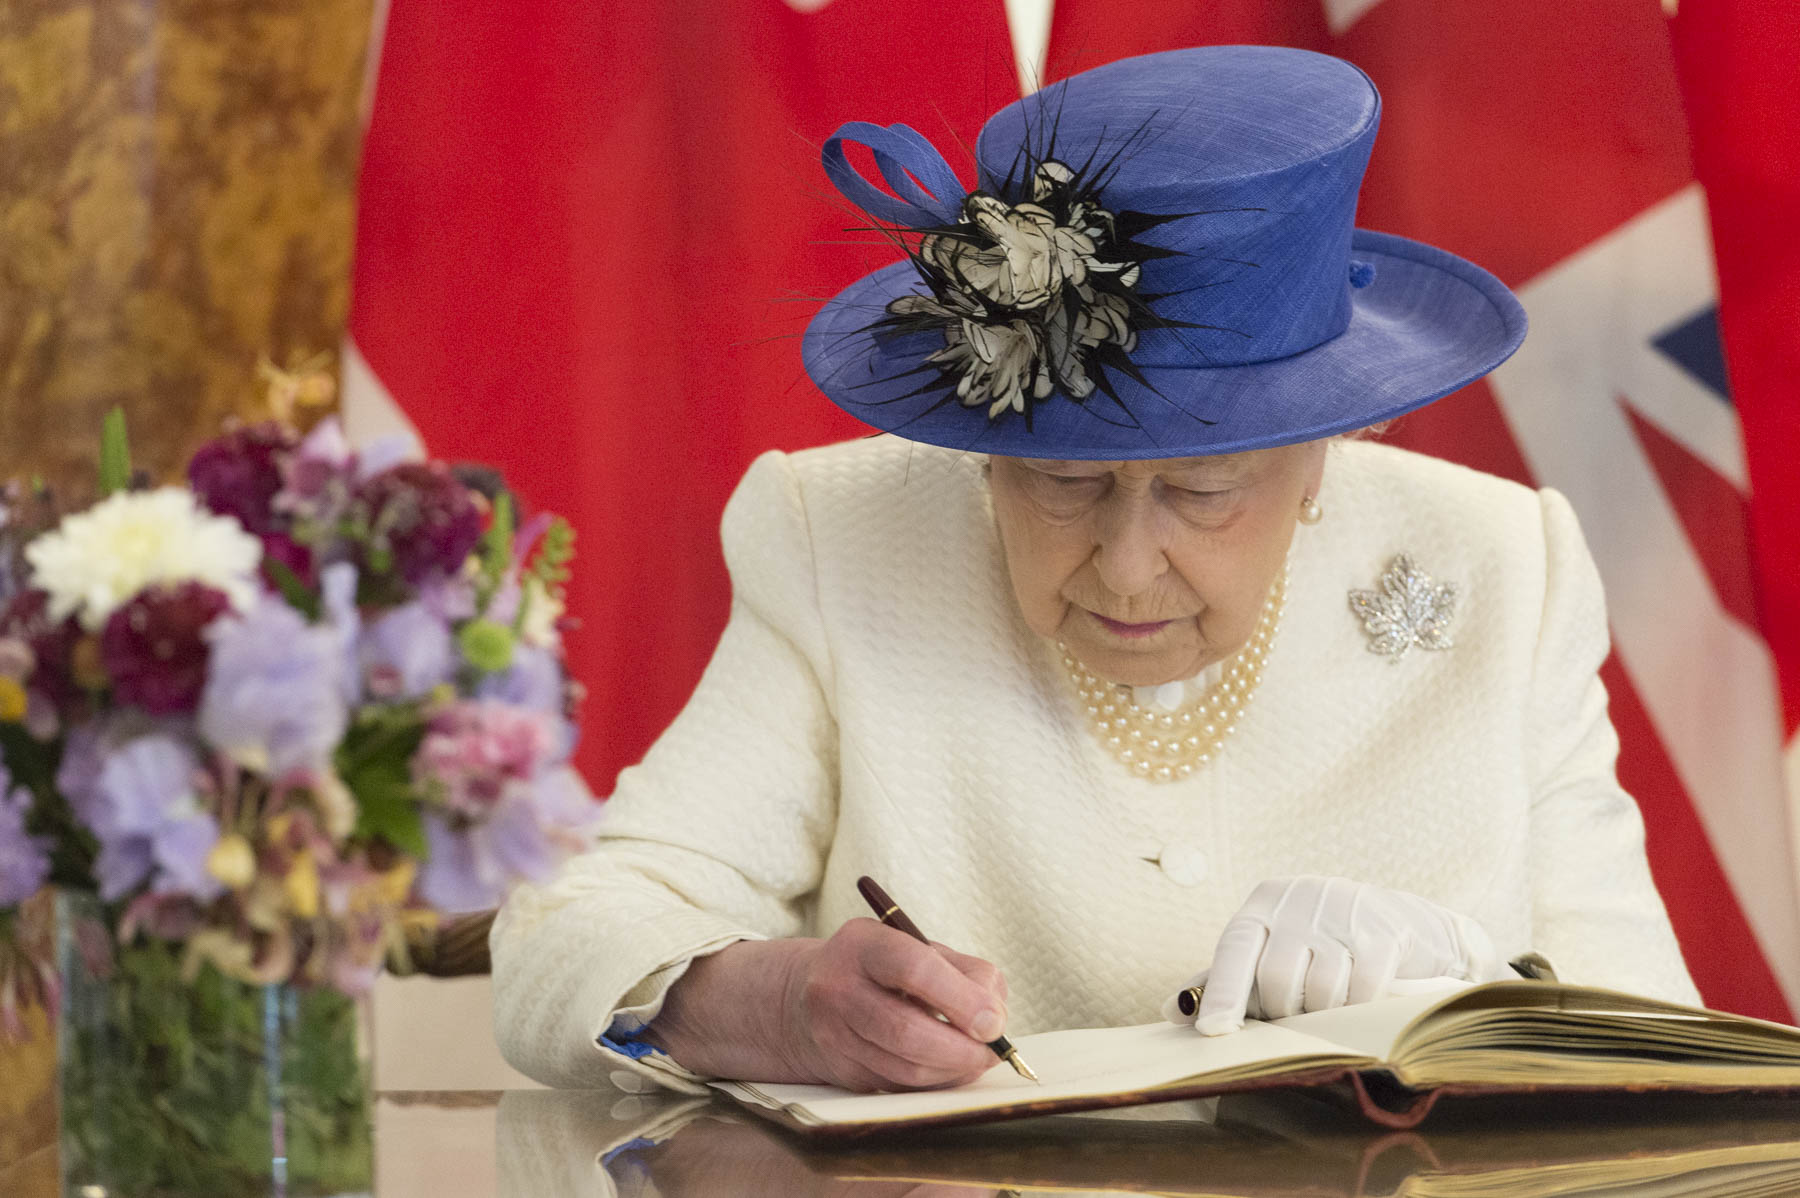 Her Majesty The Queen signed Canada House's guest book.